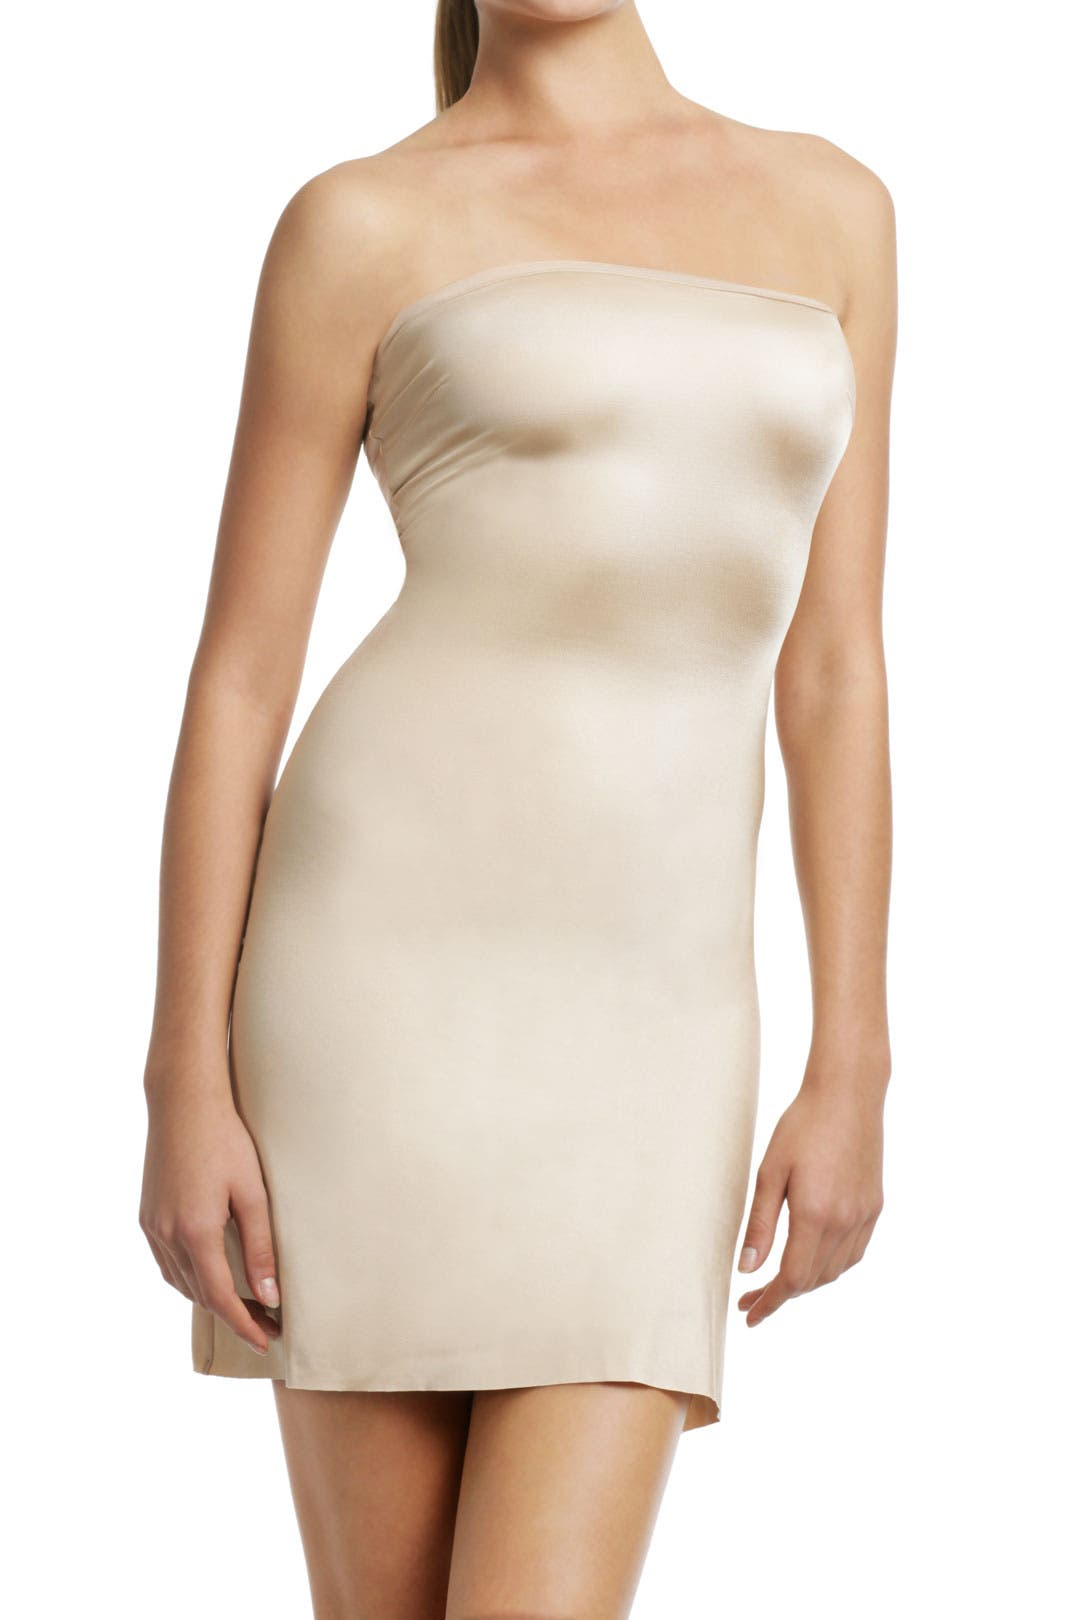 The Simplicity Convertible Full Slip in Nude by Spanx